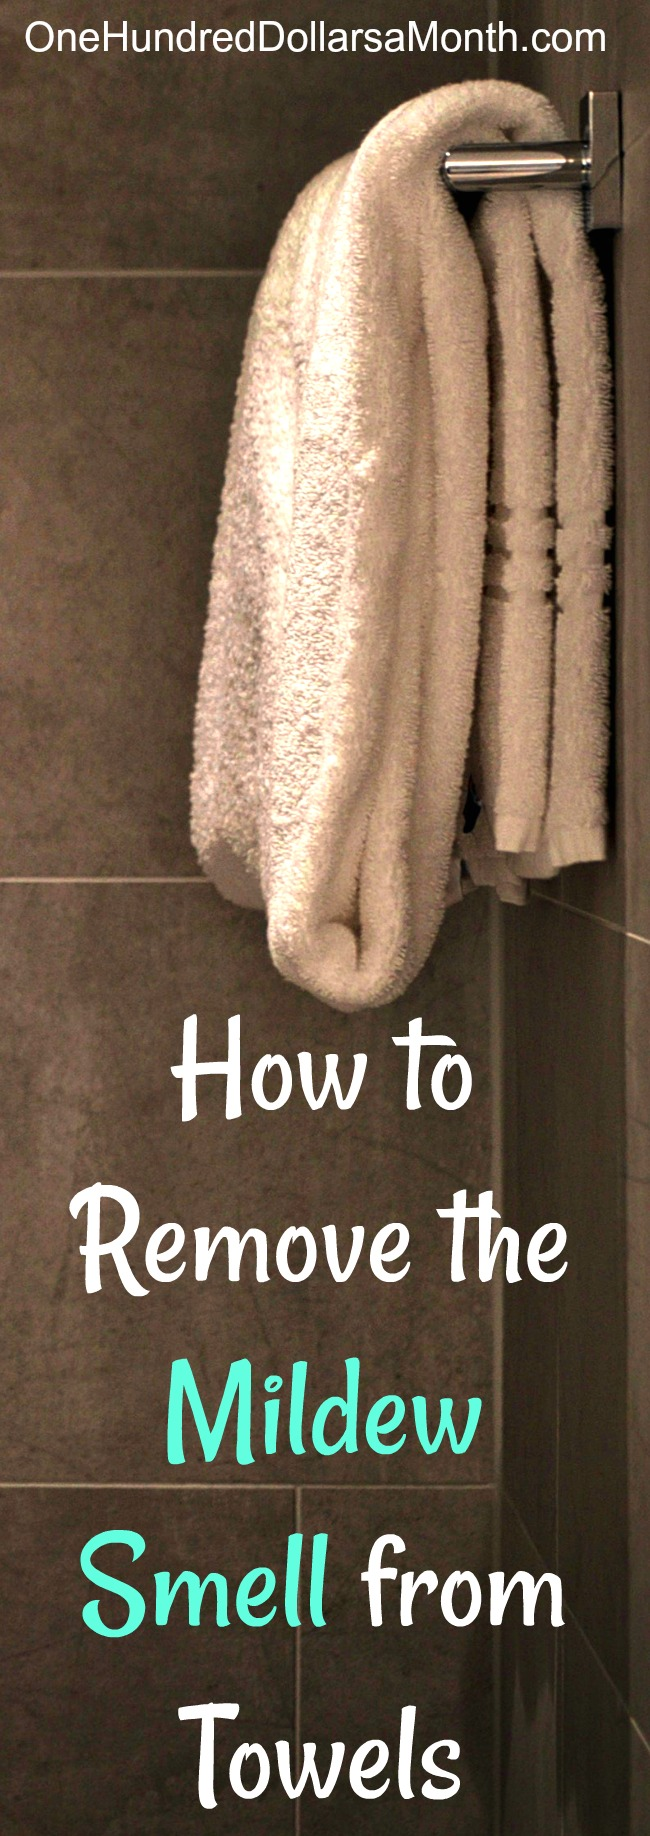 How To Remove Mildew Smell From Towels  One Hundred